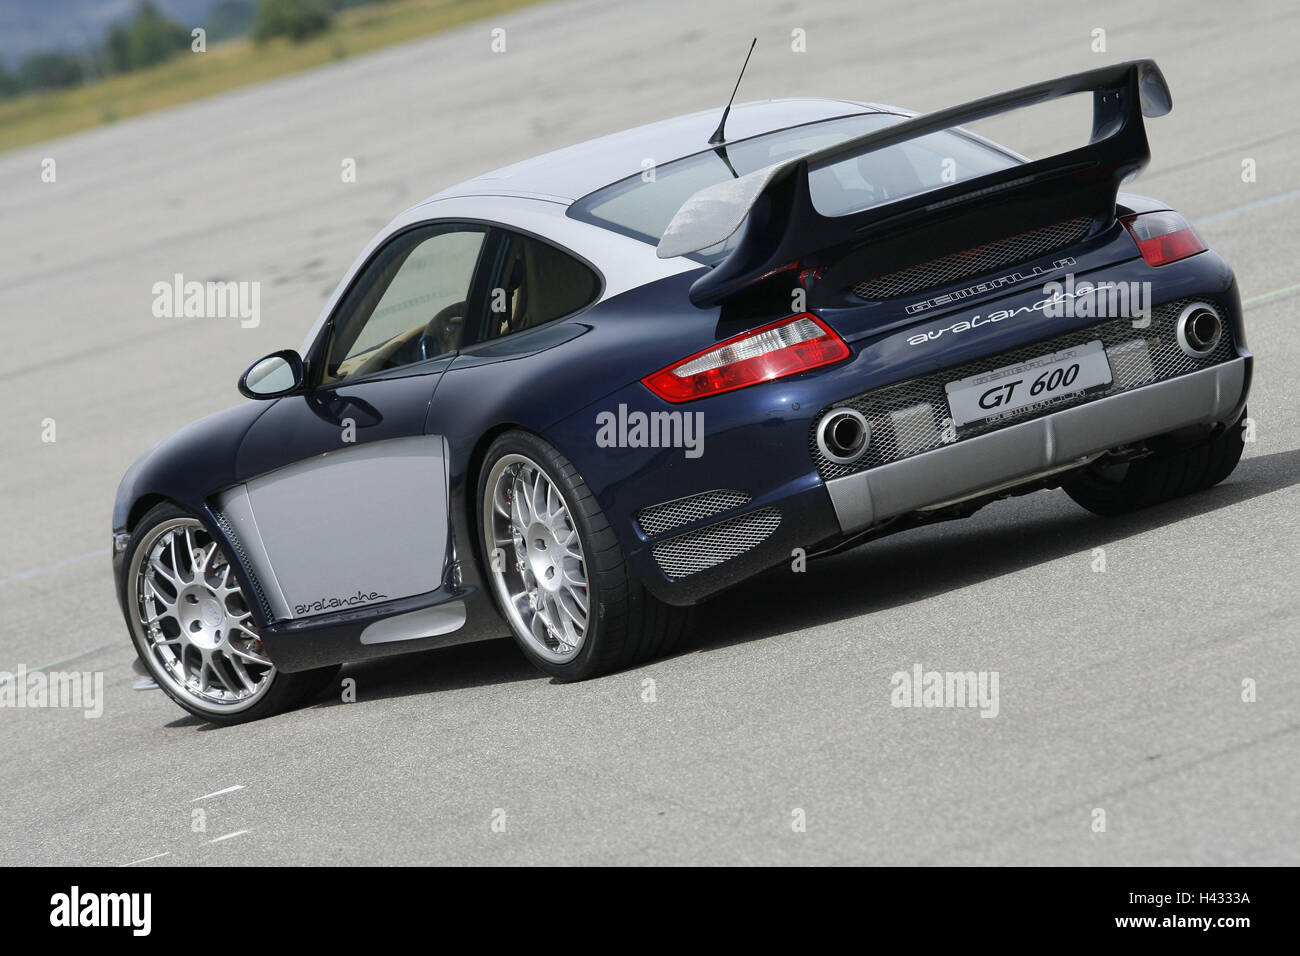 Gemballa Porsche, Avalanche, blue white, diagonally rear view, aslant - Stock Image